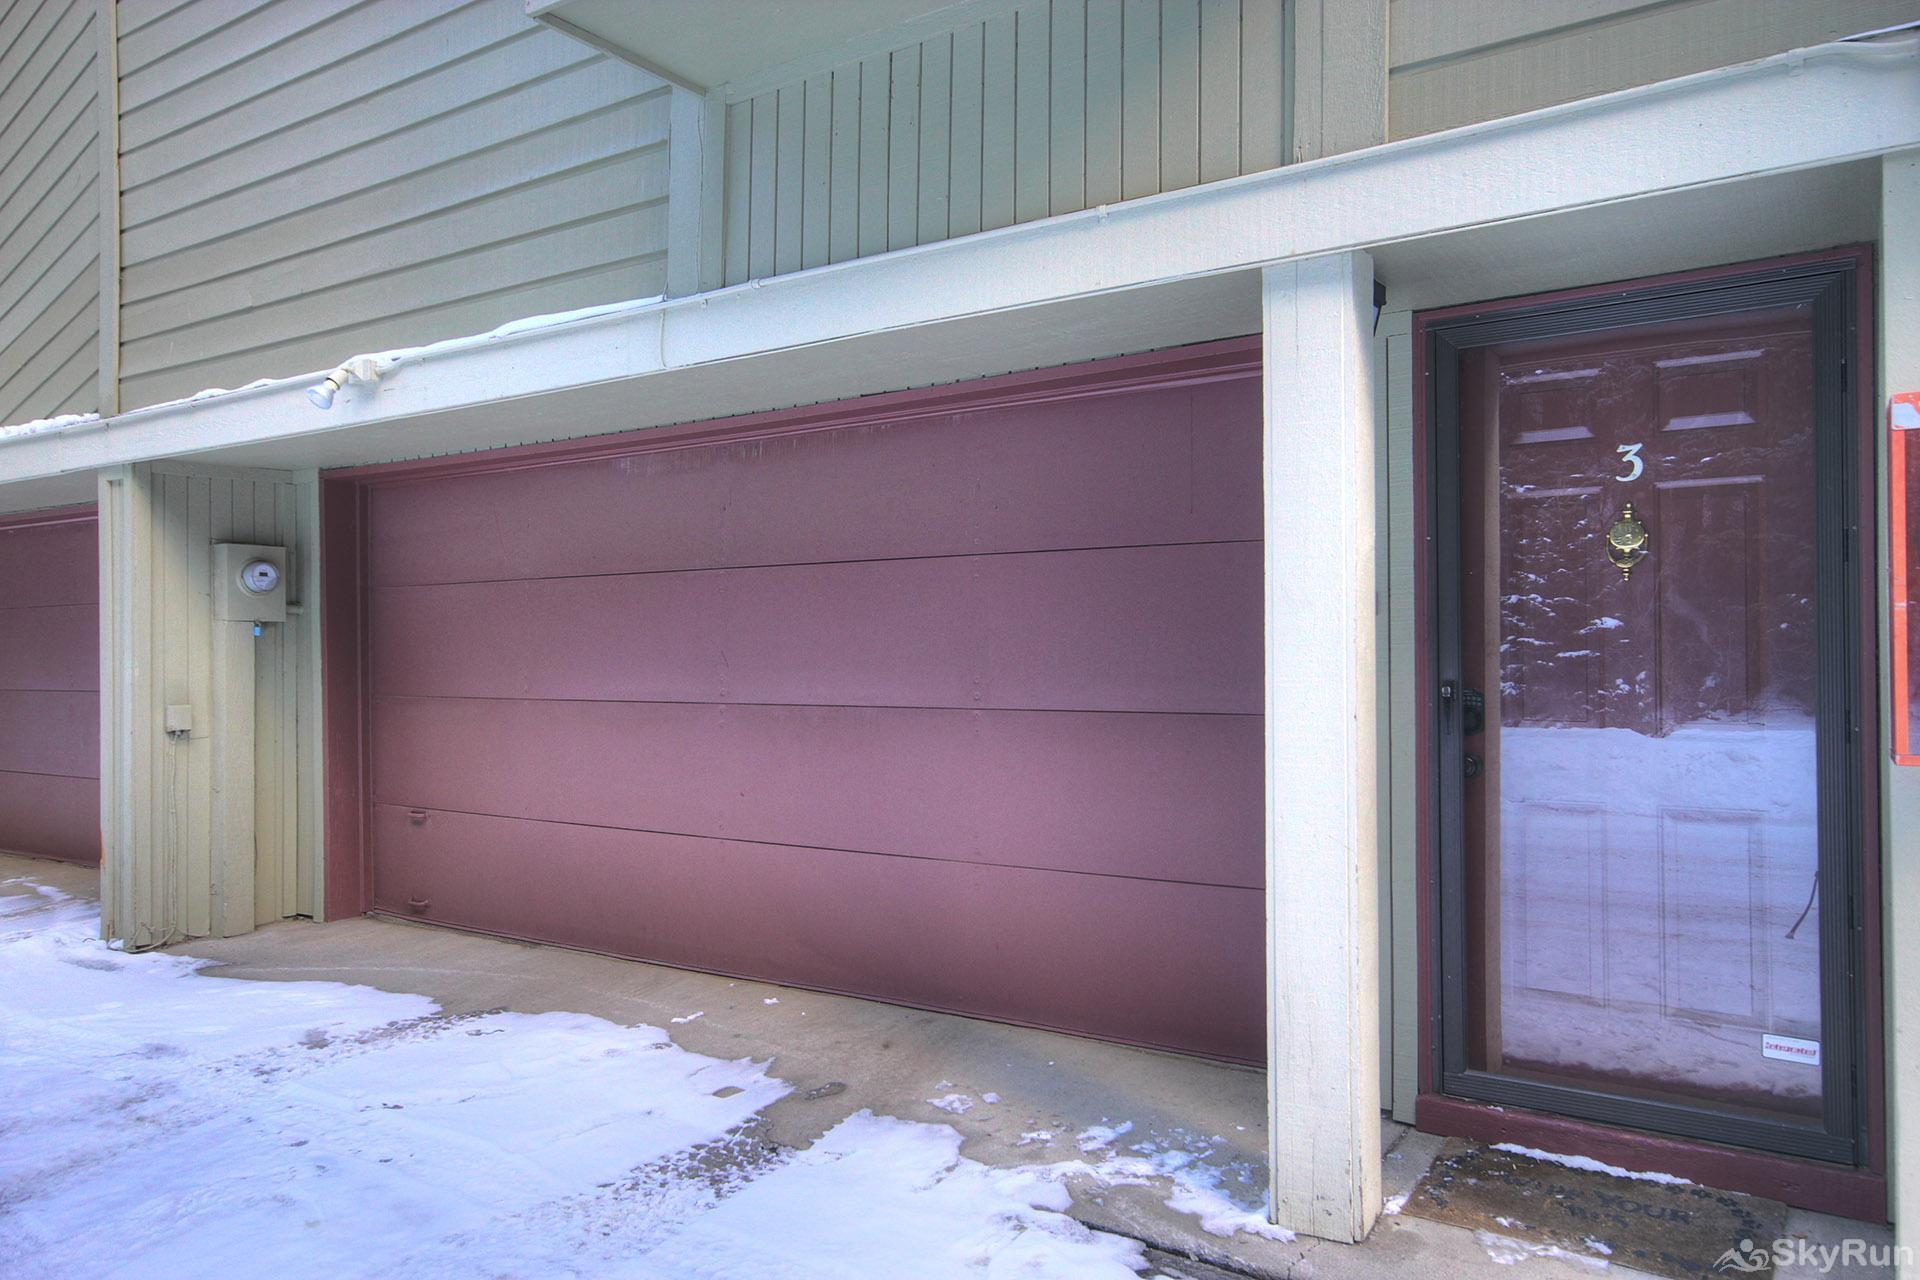 Trappeur 3 Garage Parking/Front Door